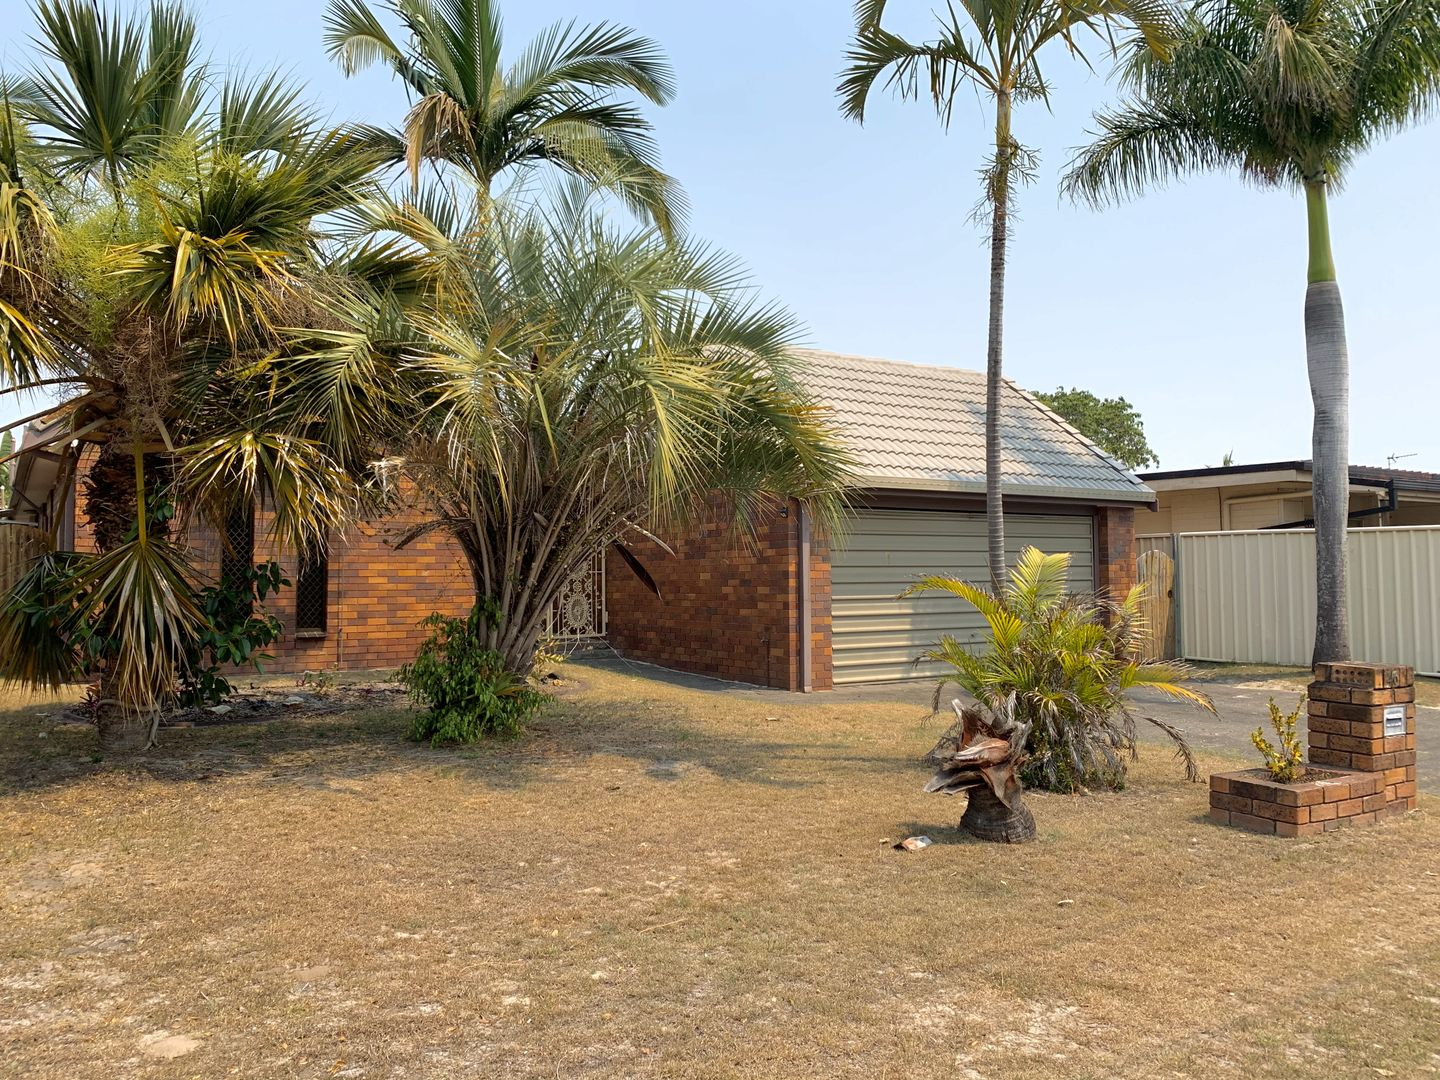 46 Surfers Avenue, Mermaid Waters QLD 4218, Image 0